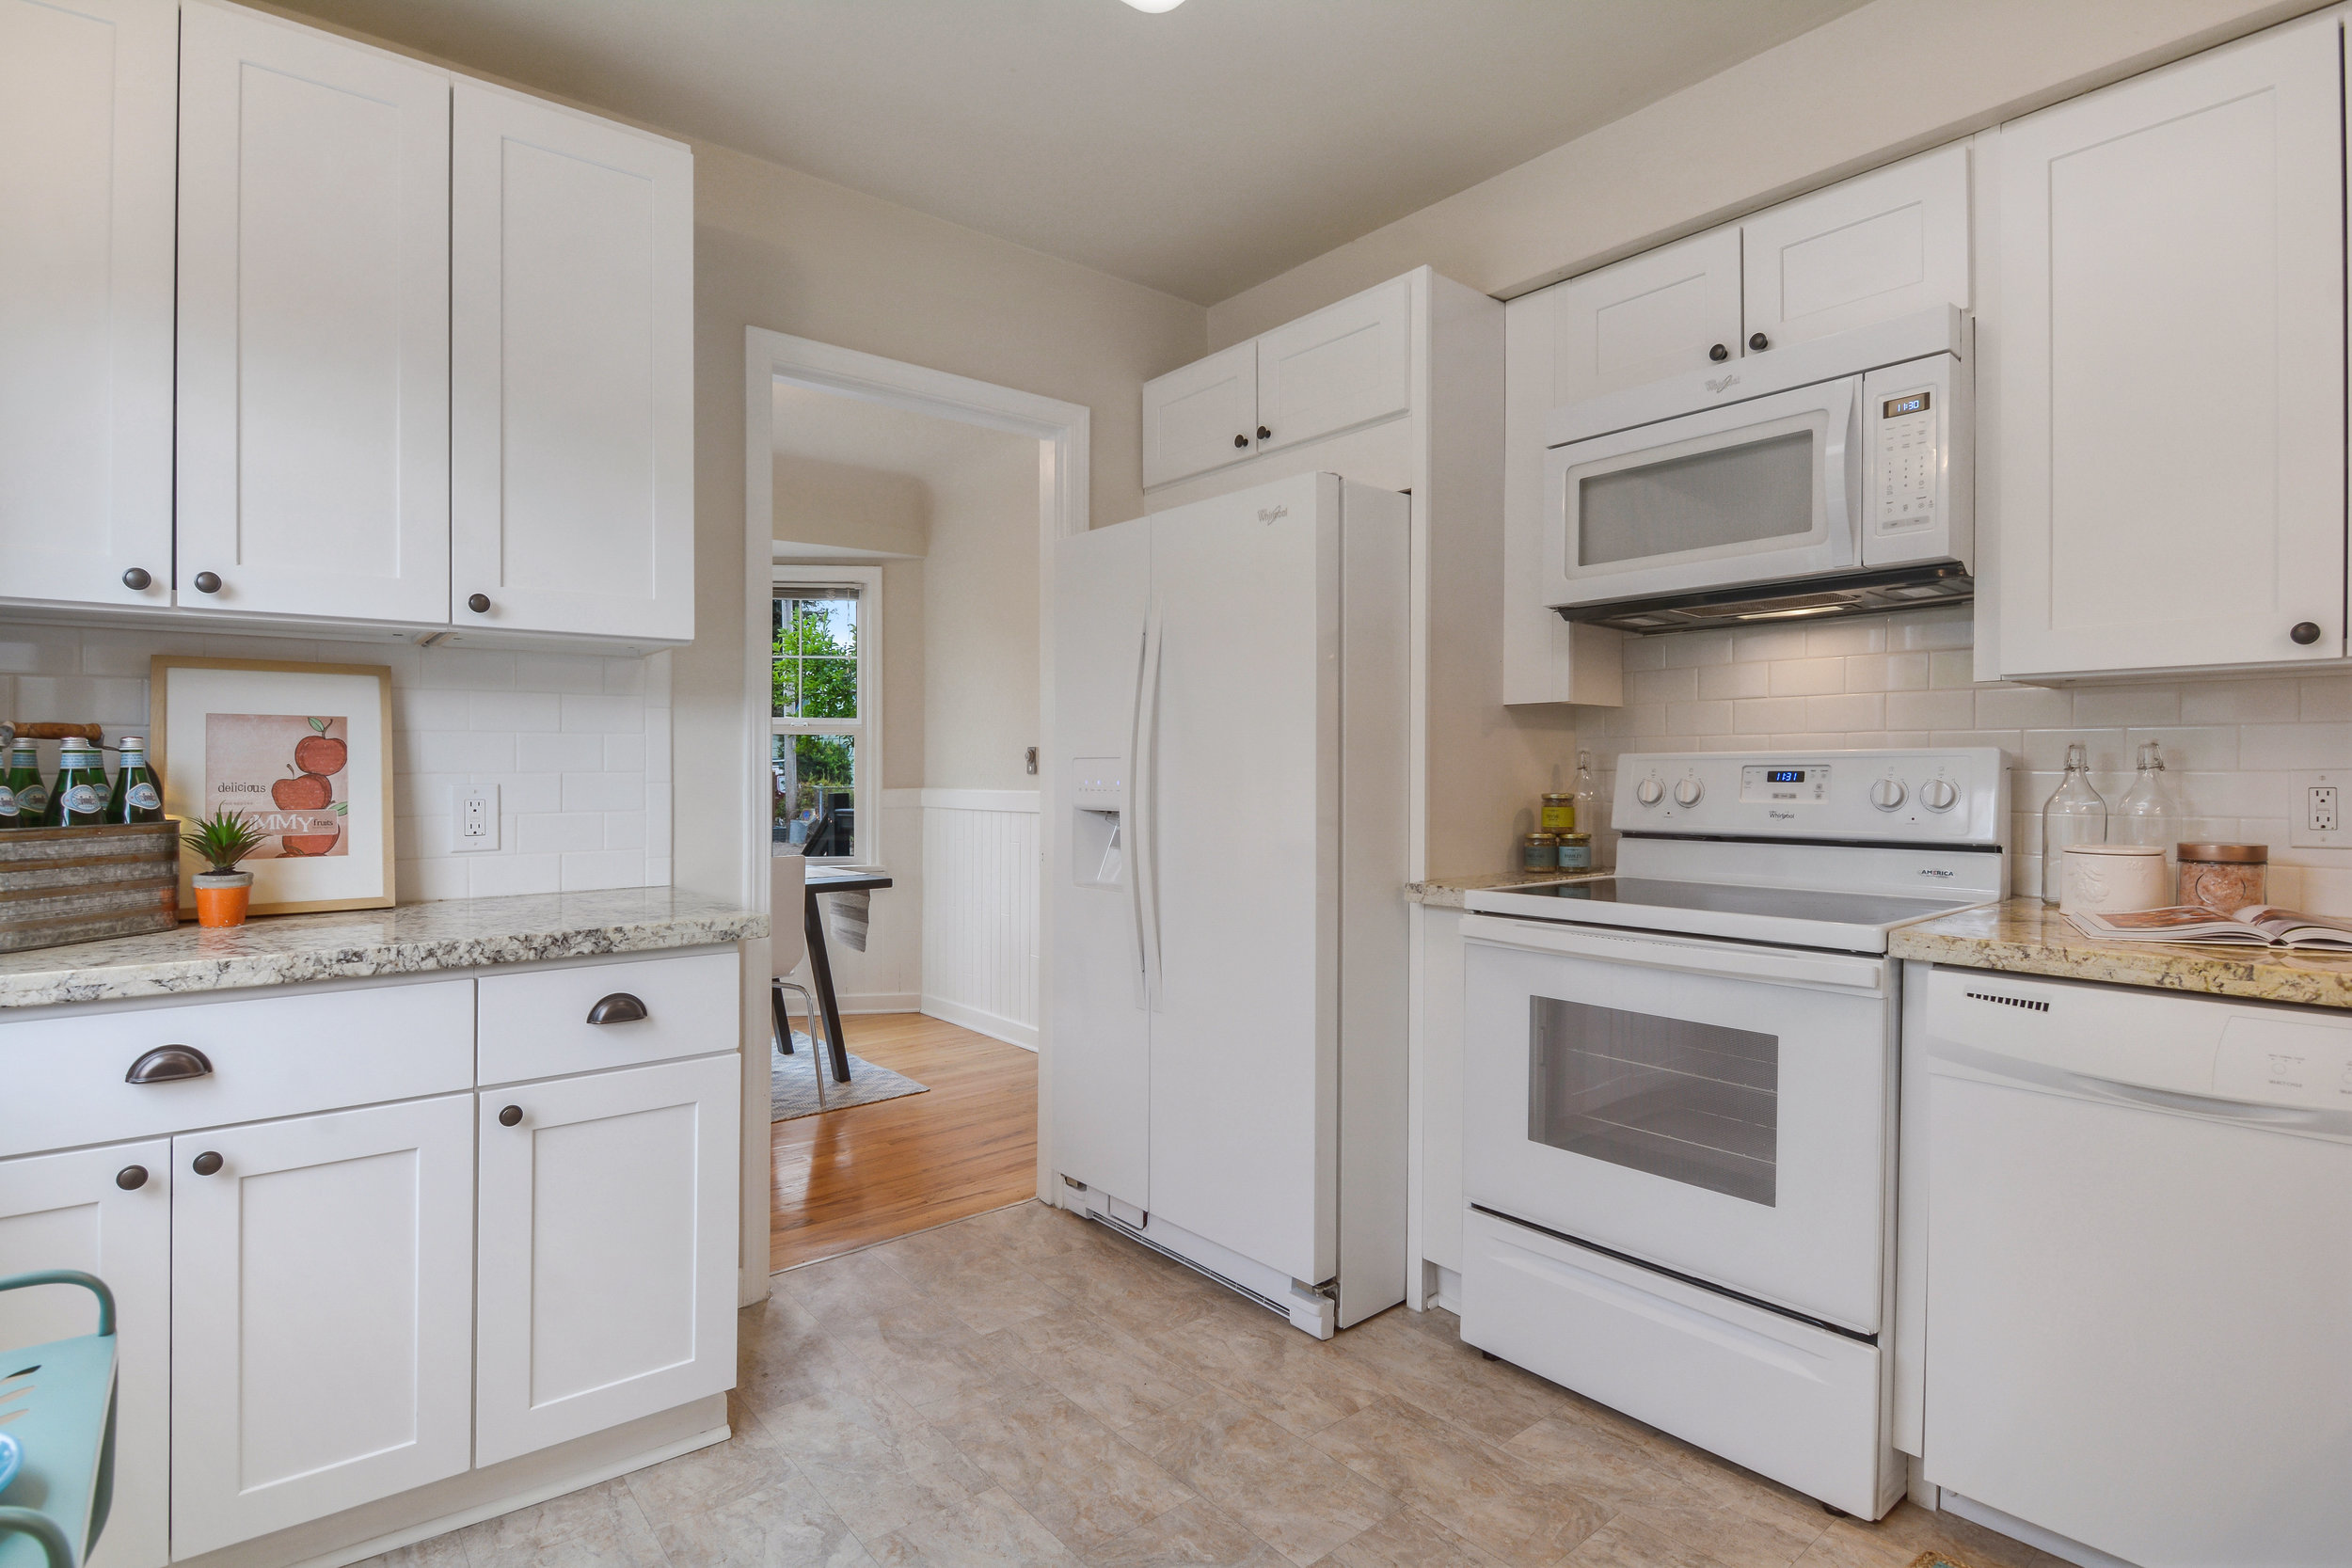 This kitchen is fitted with a neutral, easy to maintain vinyl floor that adds a touch of warmth to the clean, and sleek white of the subway tile backsplash, ample cabinets, and side-by-side refrigerator.